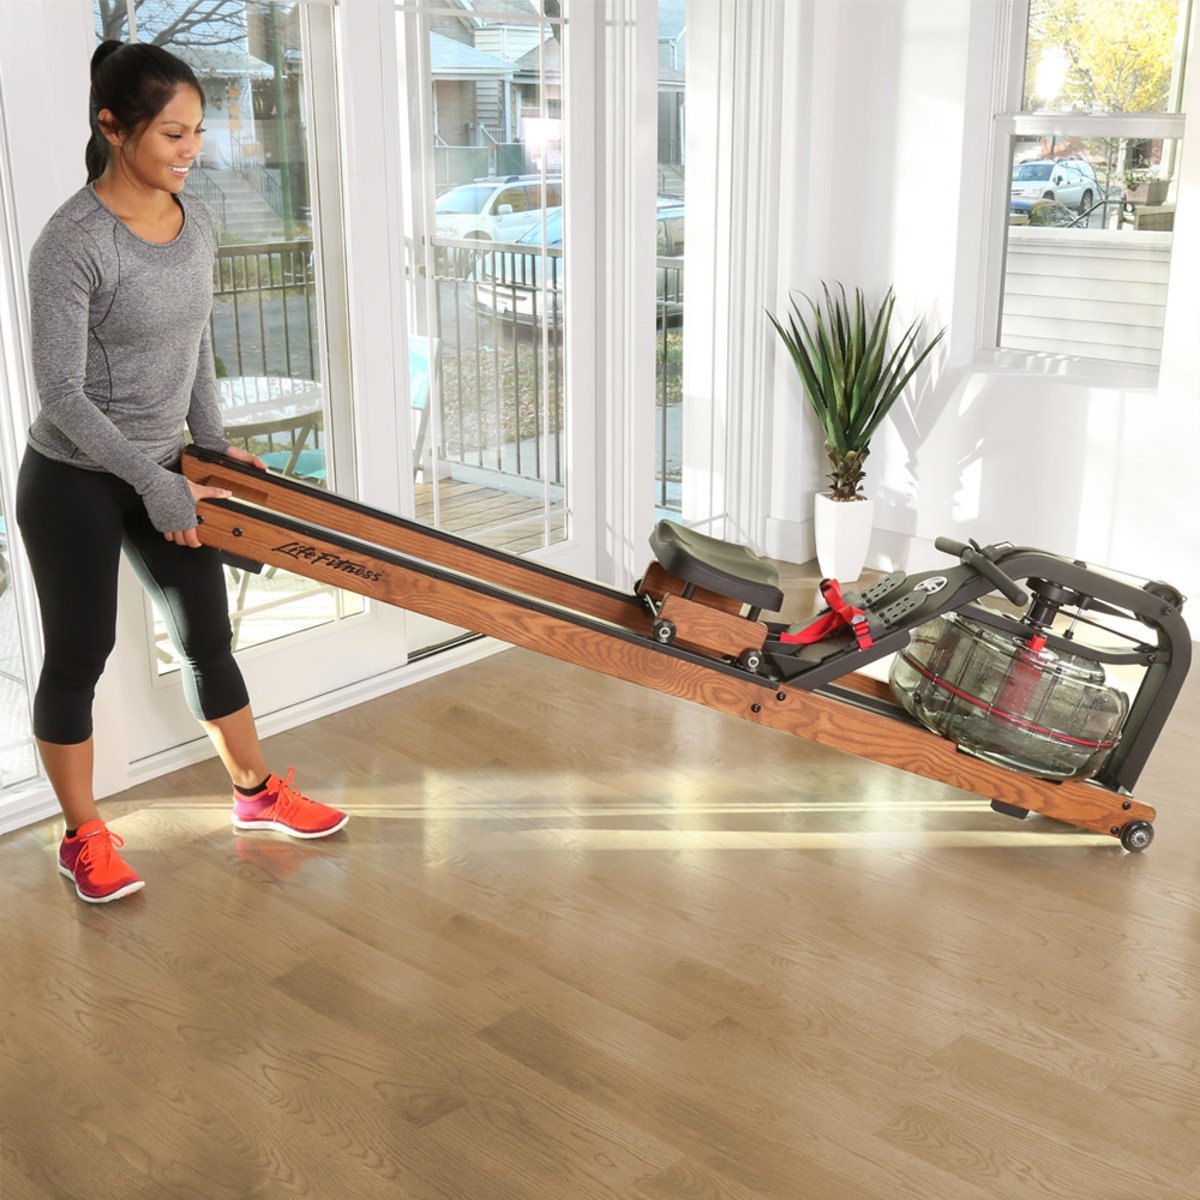 Scène Waterrower